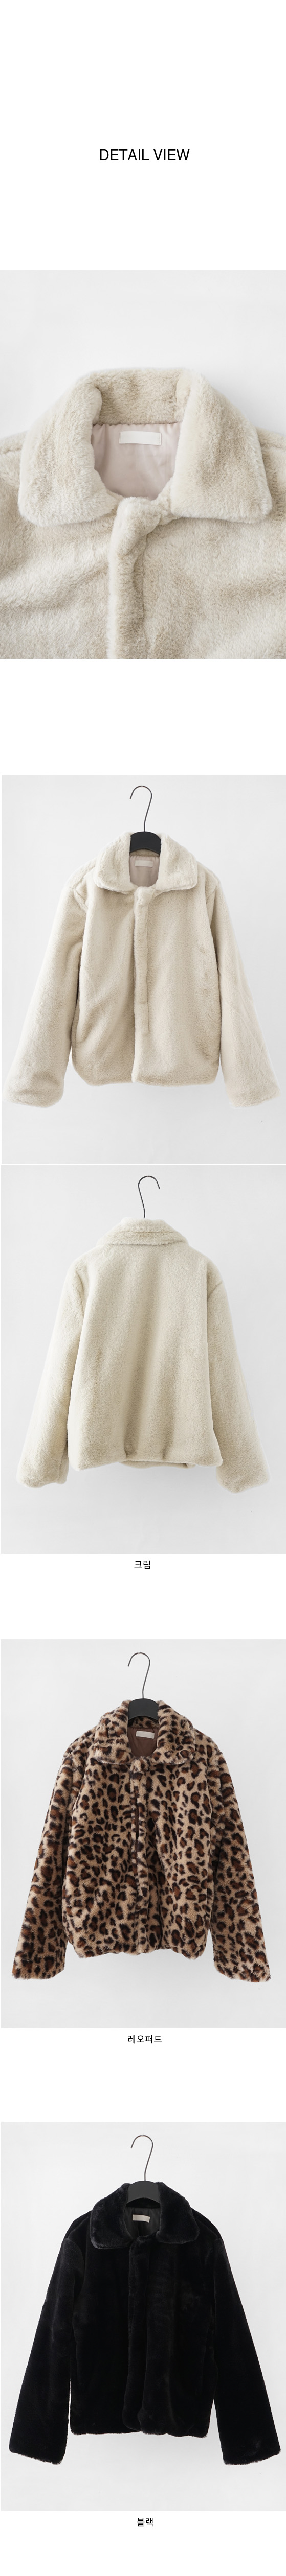 petit collar fur jacket